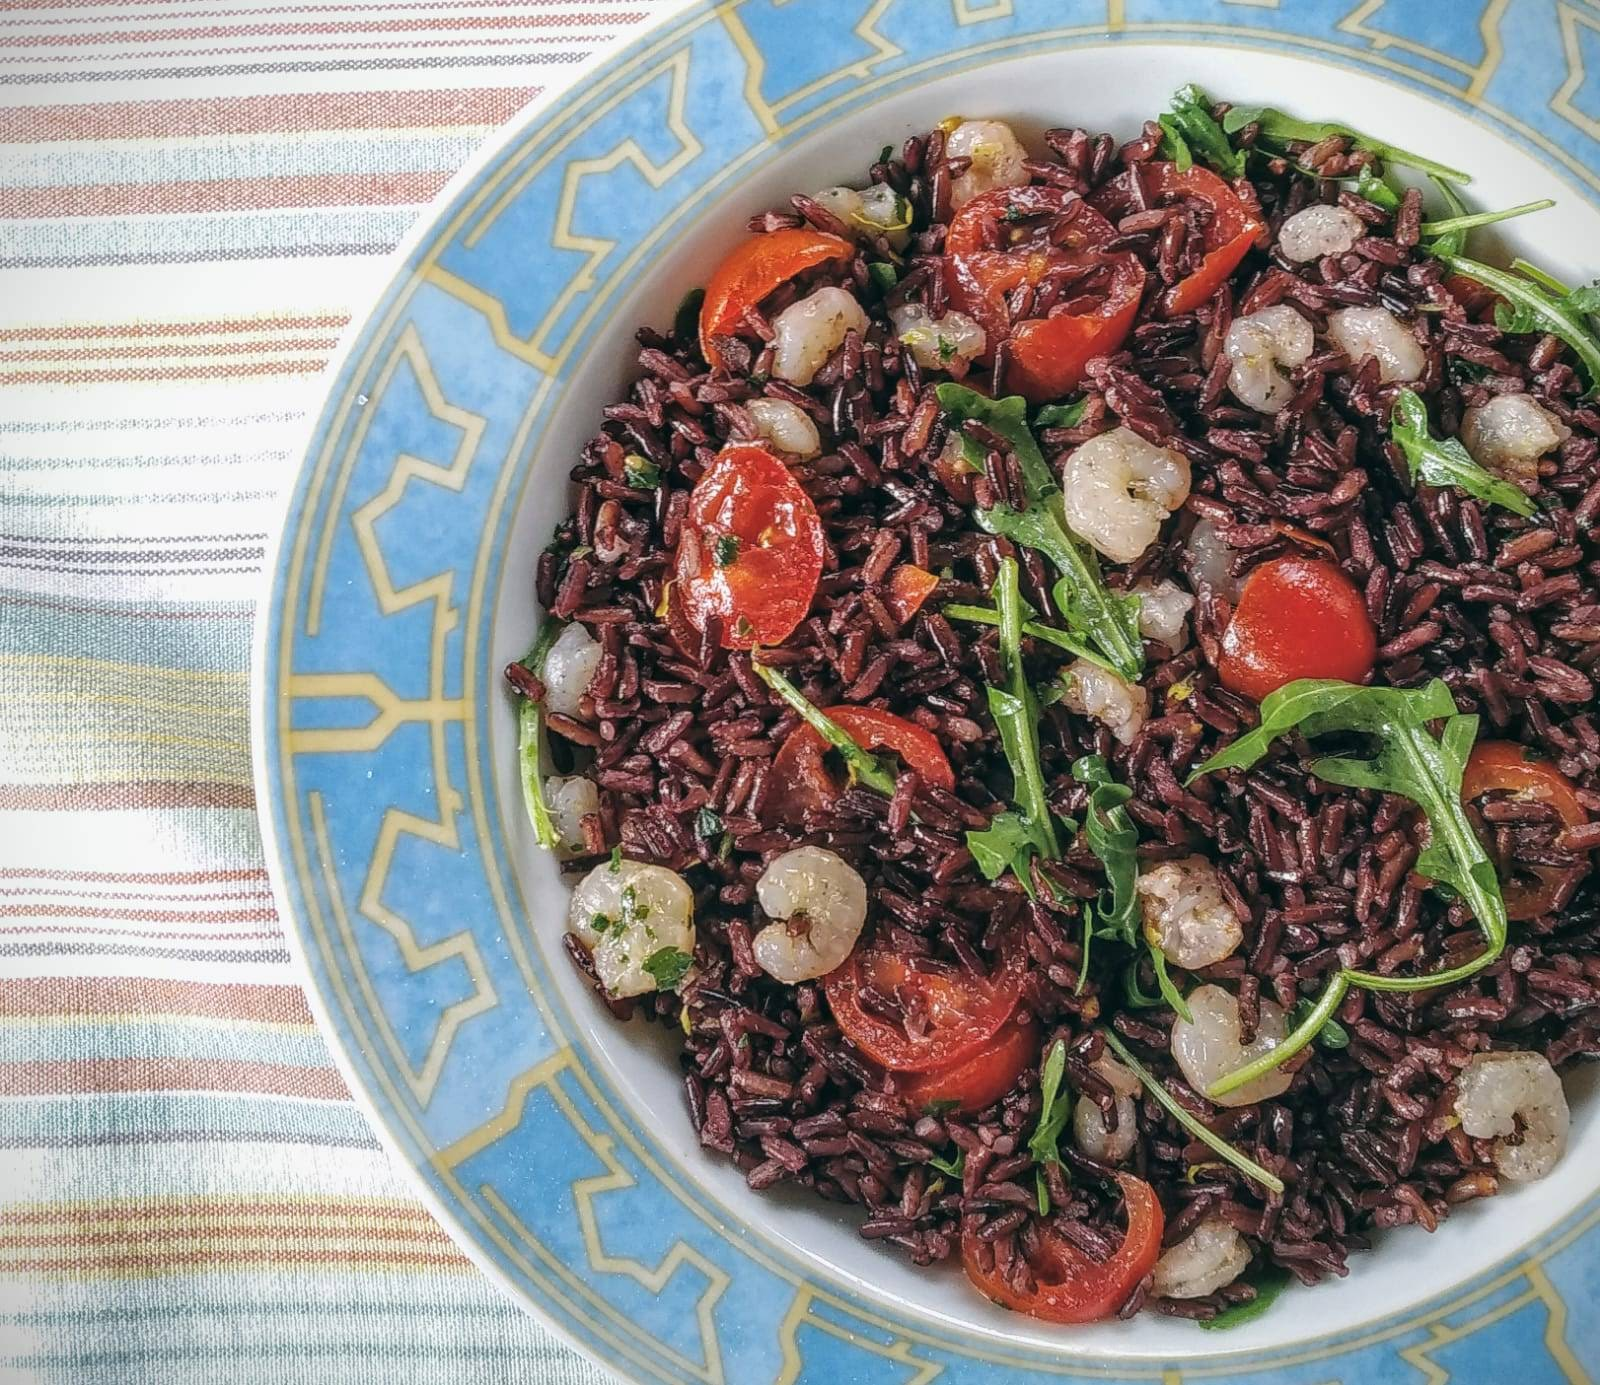 Black rice salad with rocket salad, datterini tomatoes and shrimps lime flavour